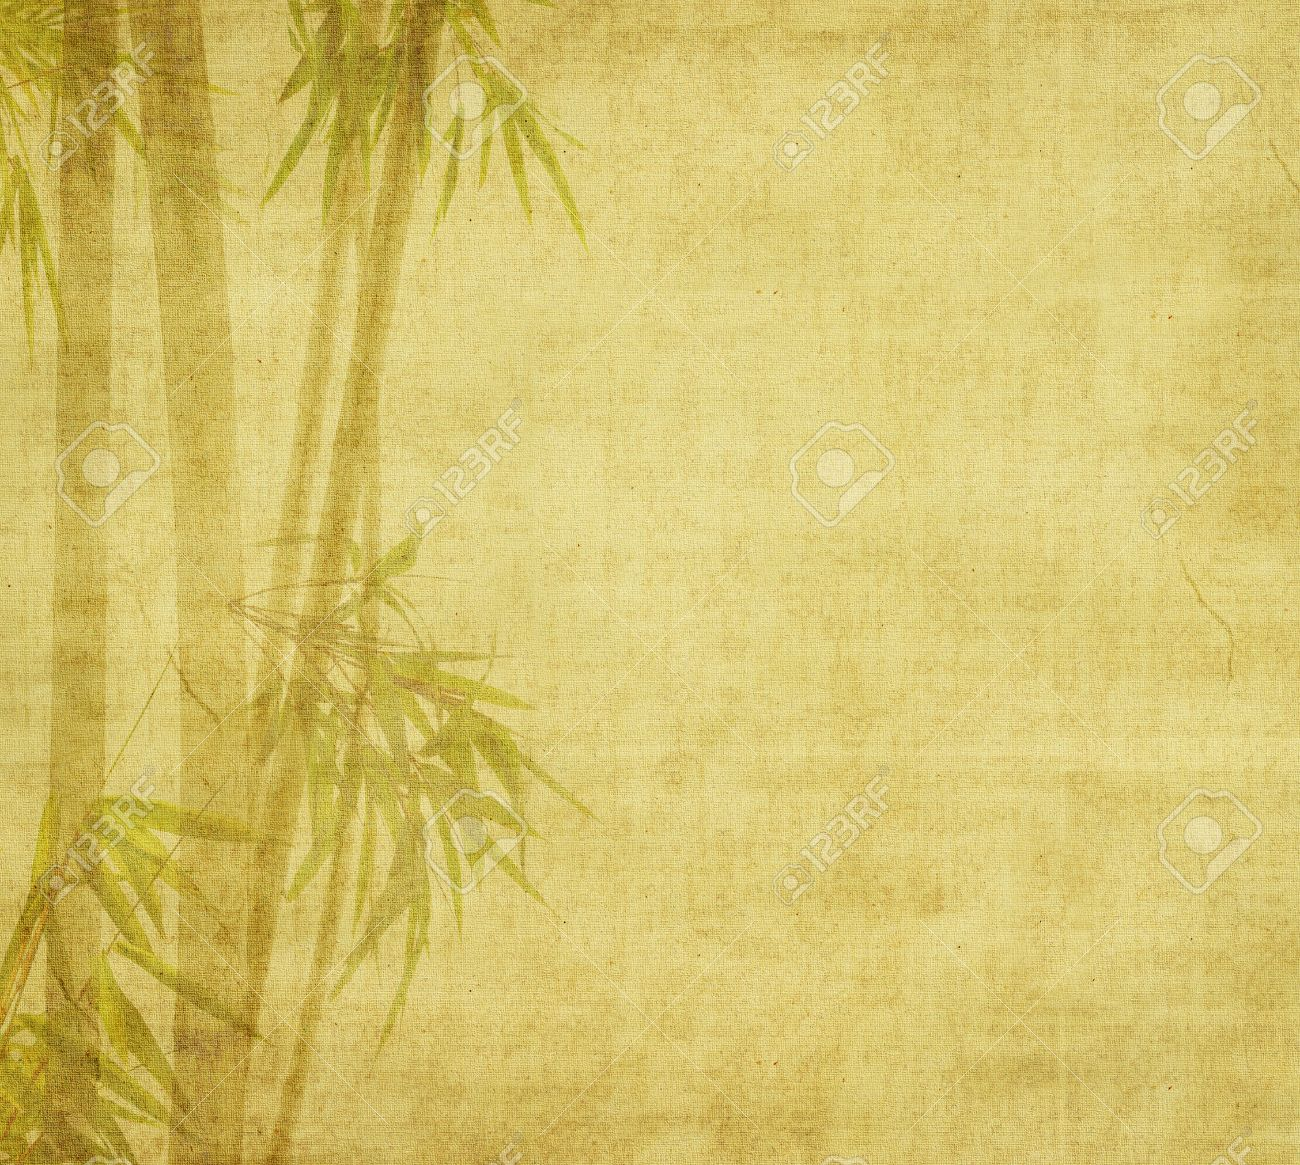 Paper Bamboo Bamboo on Paper Background